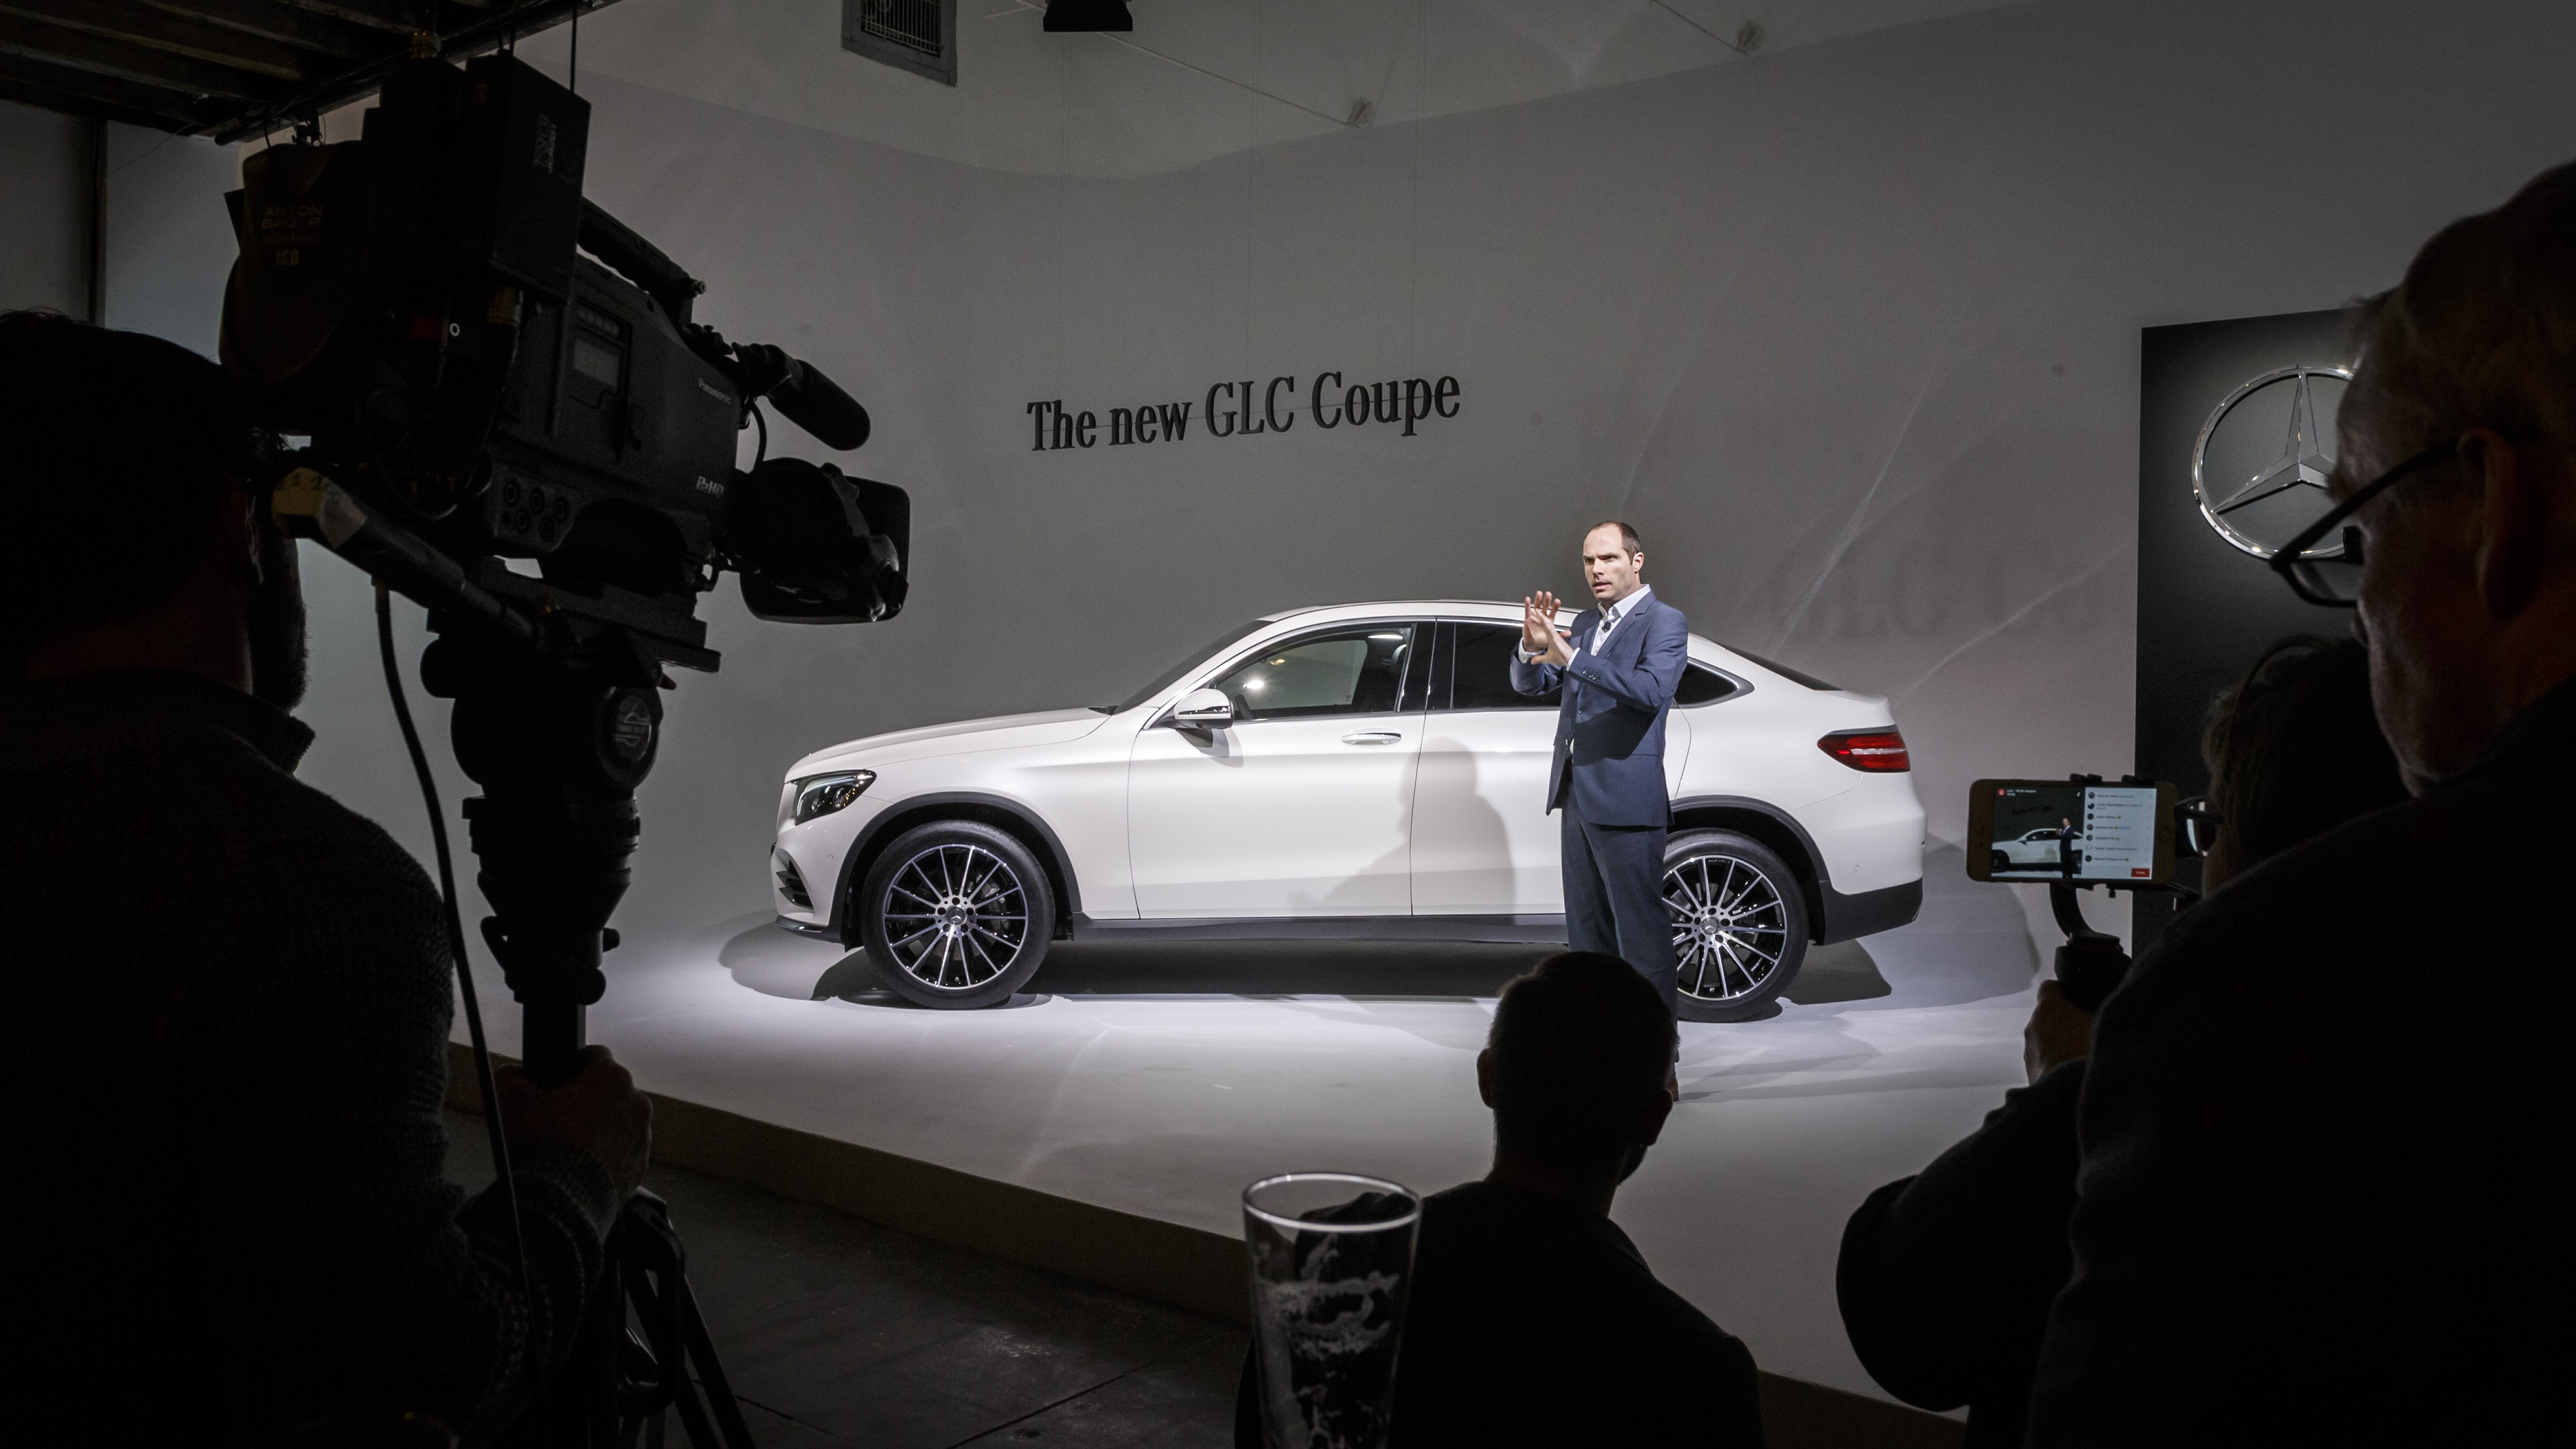 Weltpremiere des Mercedes-Benz GLC Coupé am Vorabend der New York International Auto Show 2016: Robert Lesnik, Leiter Exterieur Design   World Premiere of the Mercedes-Benz GLC Coupé on the eve of the 2016 New York International Auto Show: Robert Lesnik, Head of Exterior Design